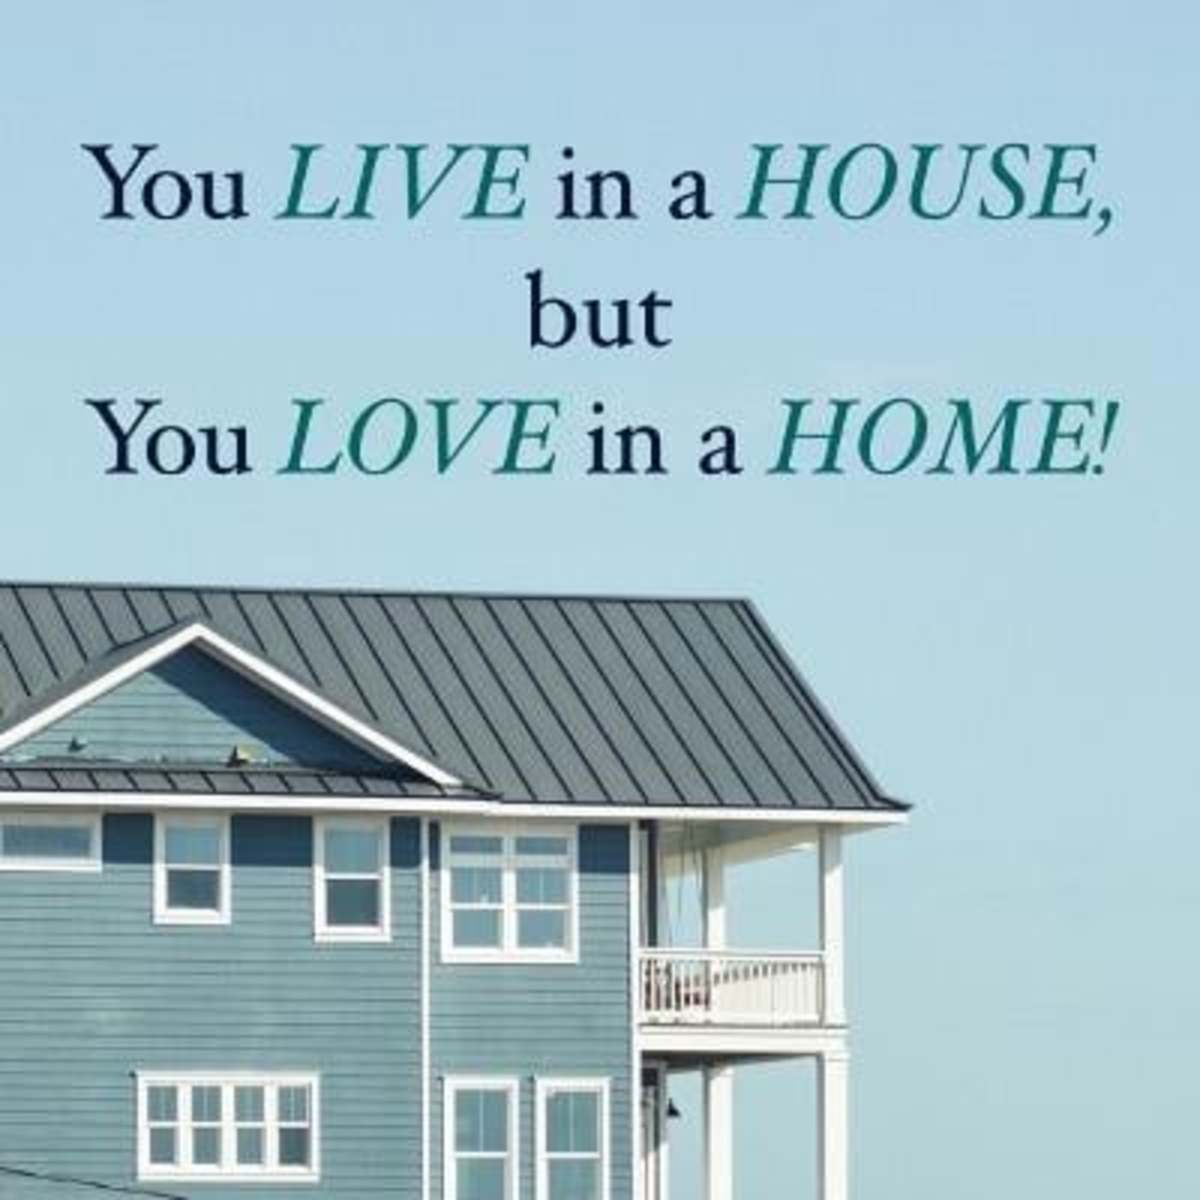 differences-between-house-and-home